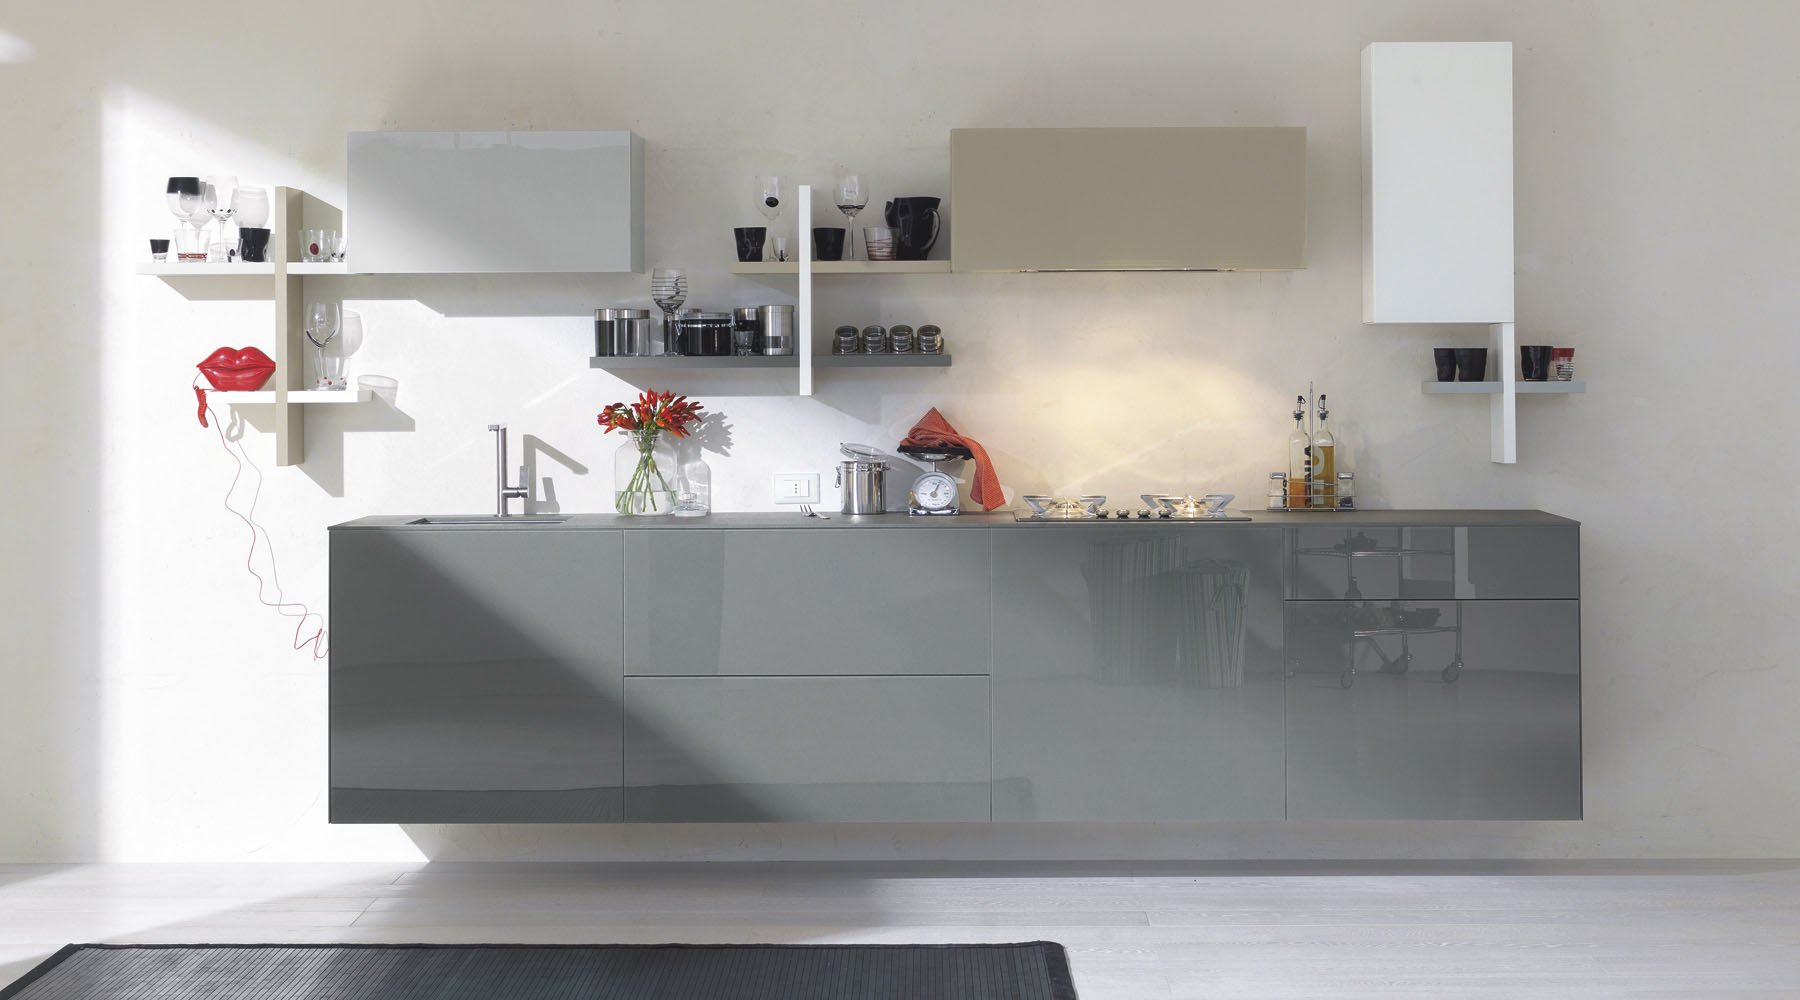 Awesome Cucina Monoblocco Prezzi Images - Brentwoodseasidecabins.com ...